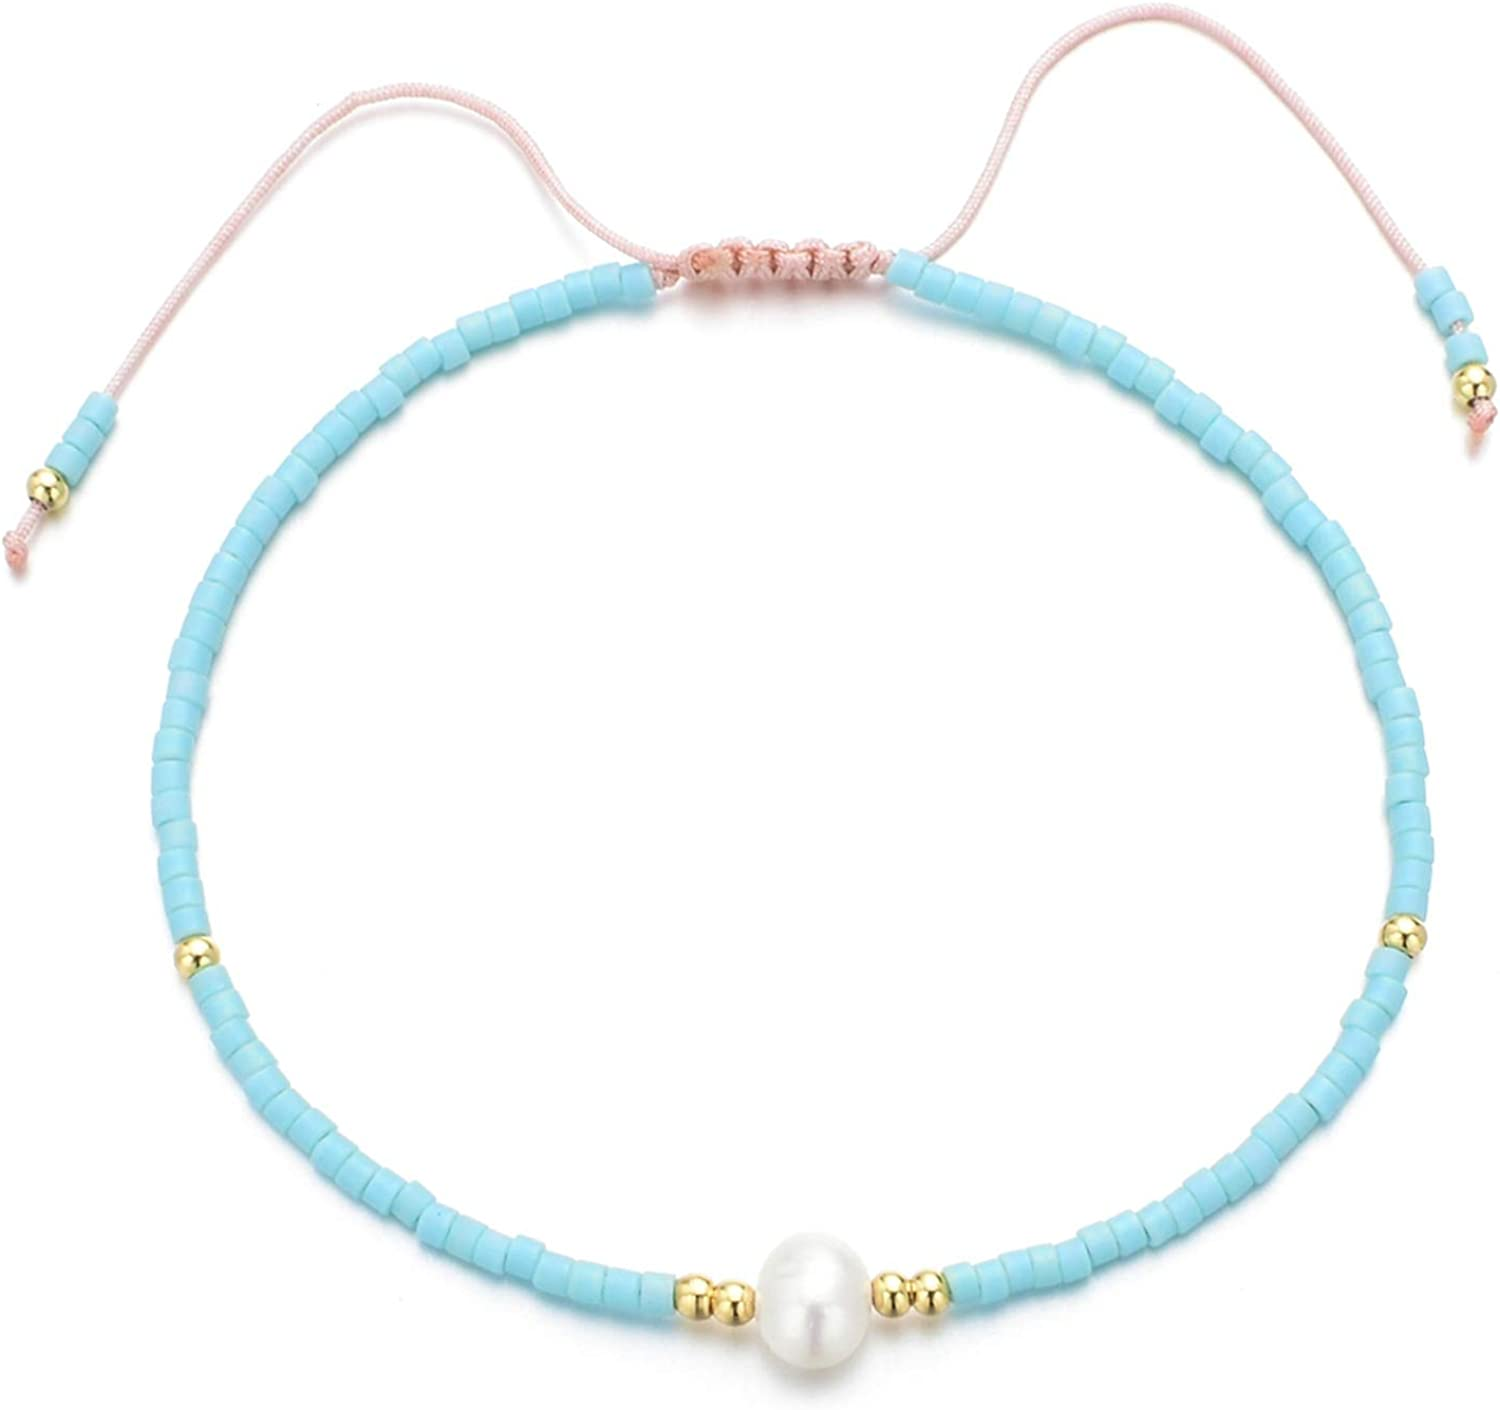 Minimalism Thin Bohemian Bracelet Femme Friendship Bracelets for Women Pearl Bracelet Crystal Seed Beads Jewelry